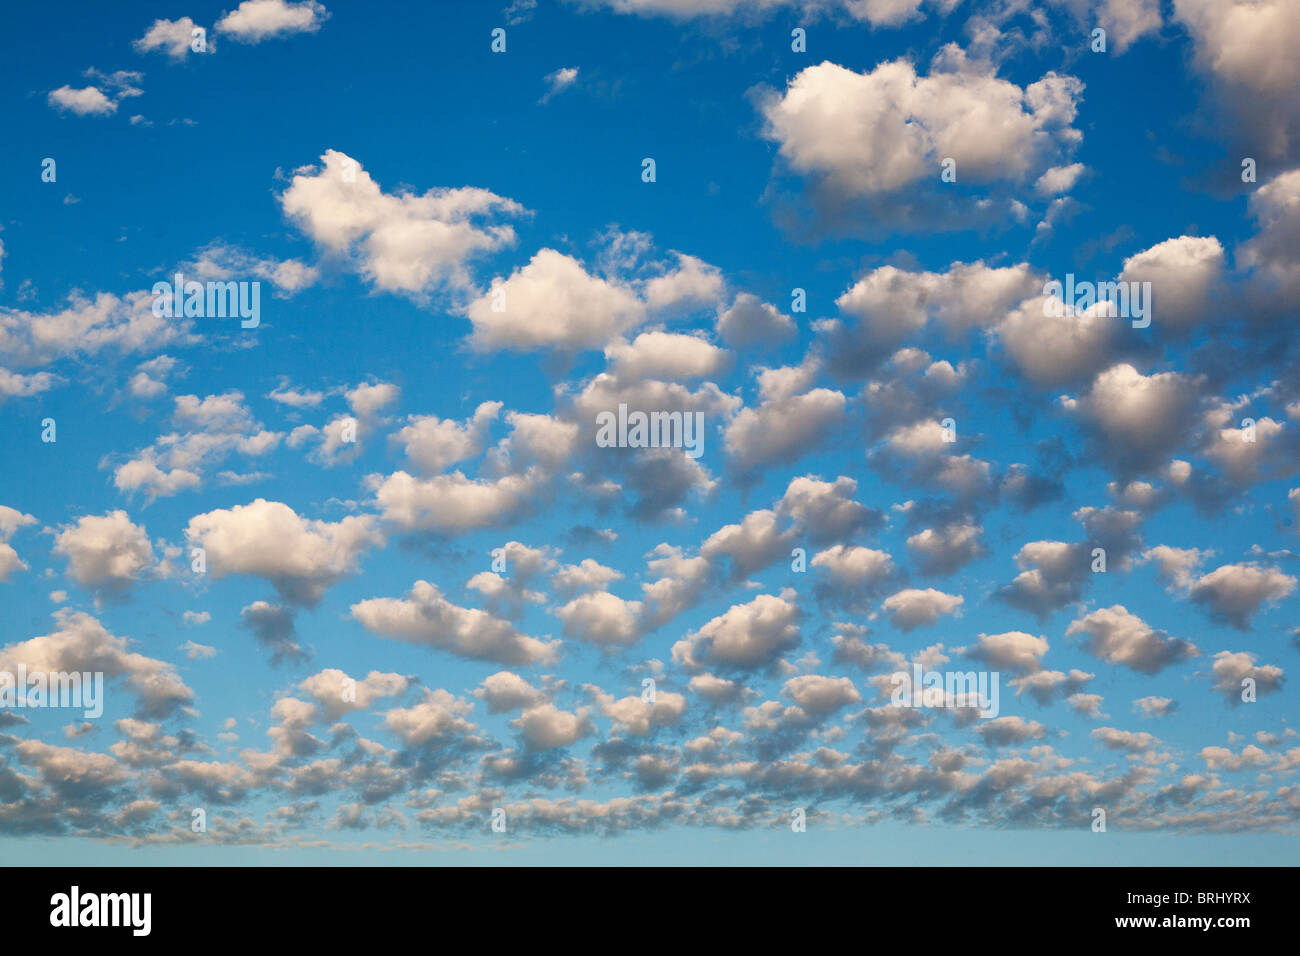 clouds in sky - Stock Image